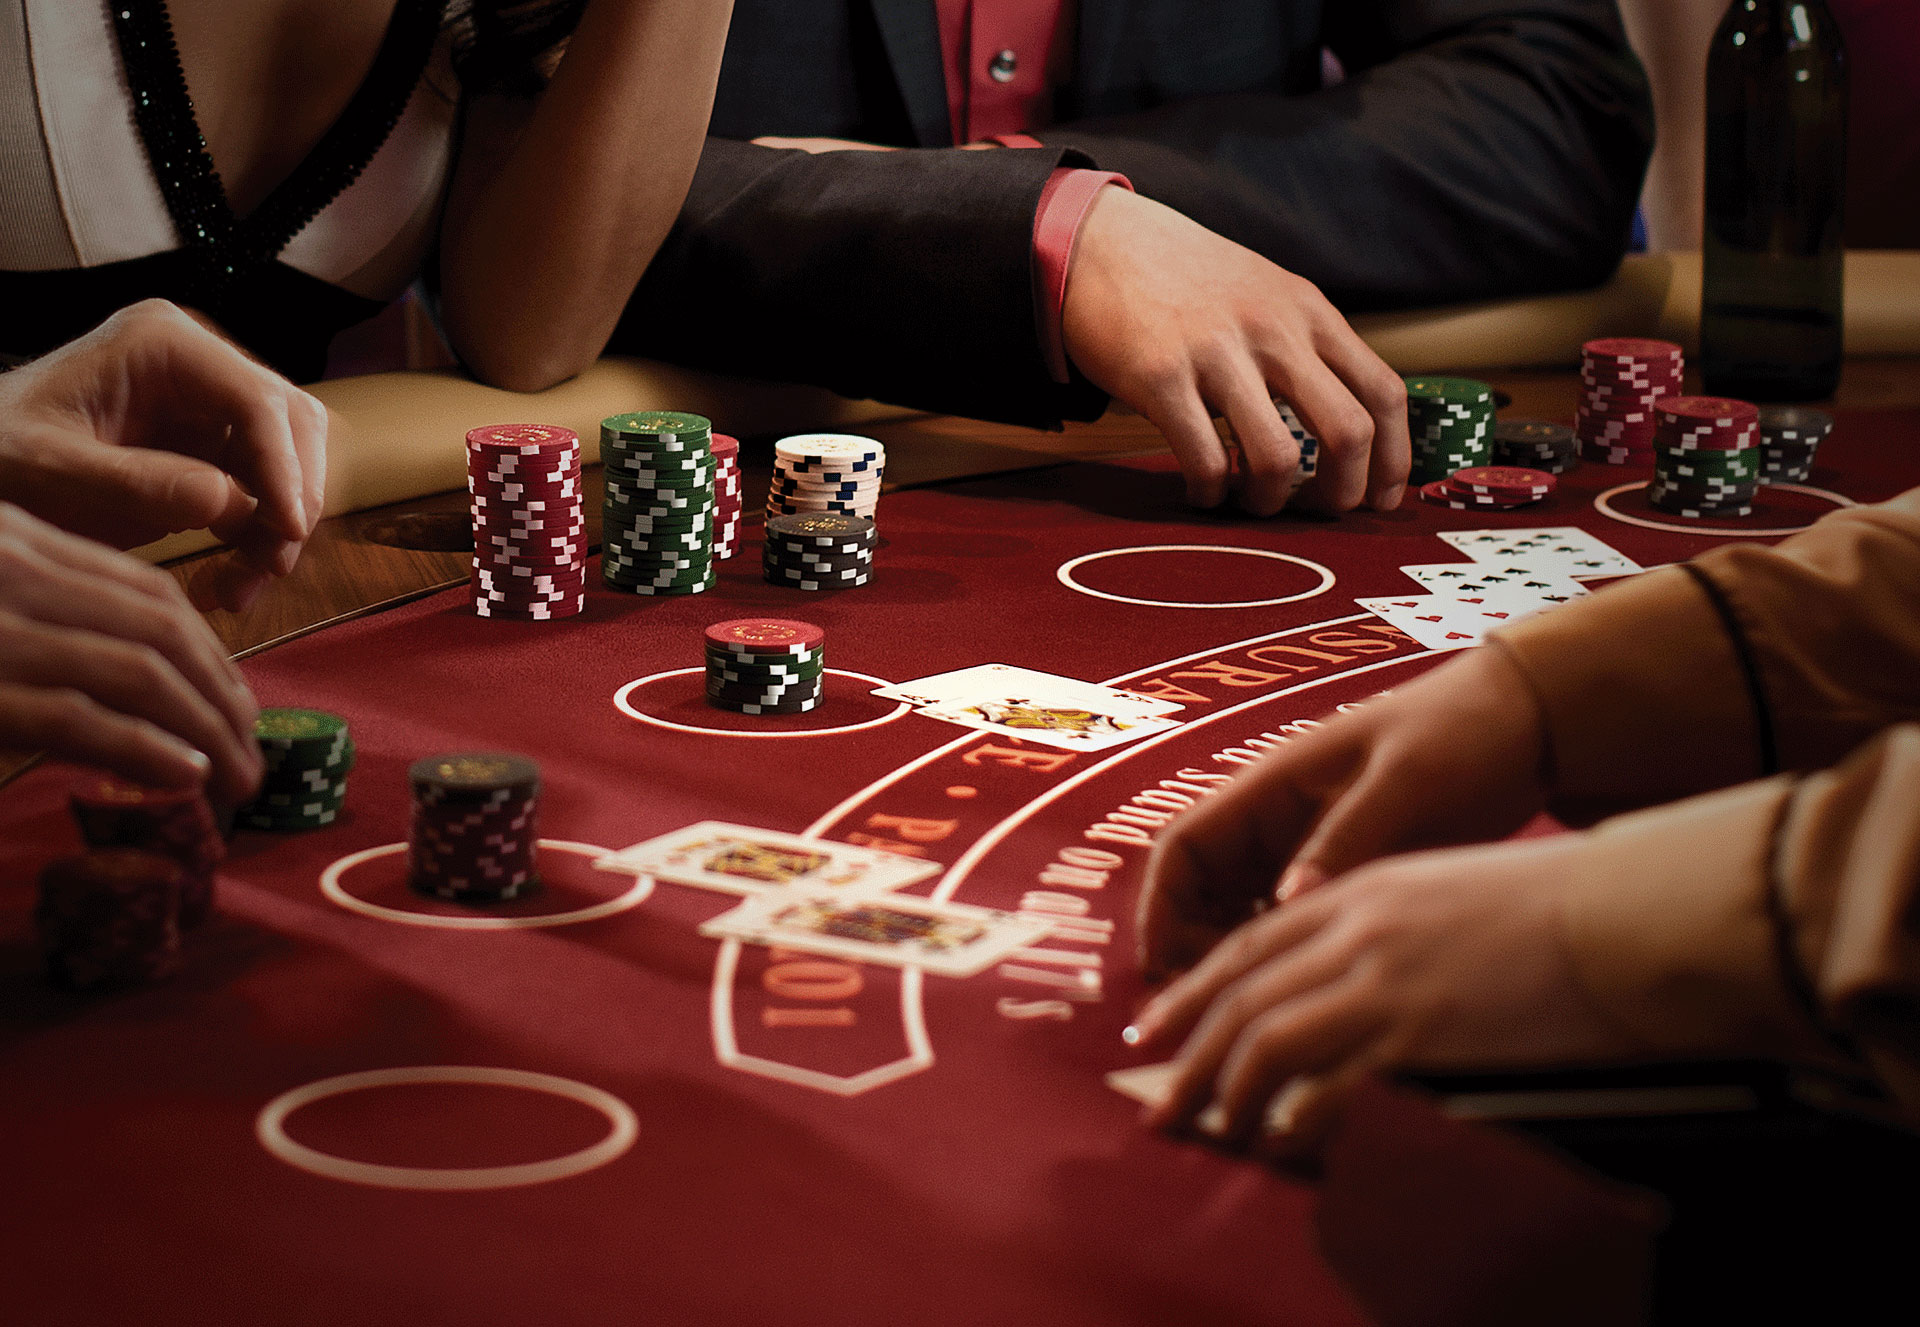 Casino Games Entertainment for All in Thailand